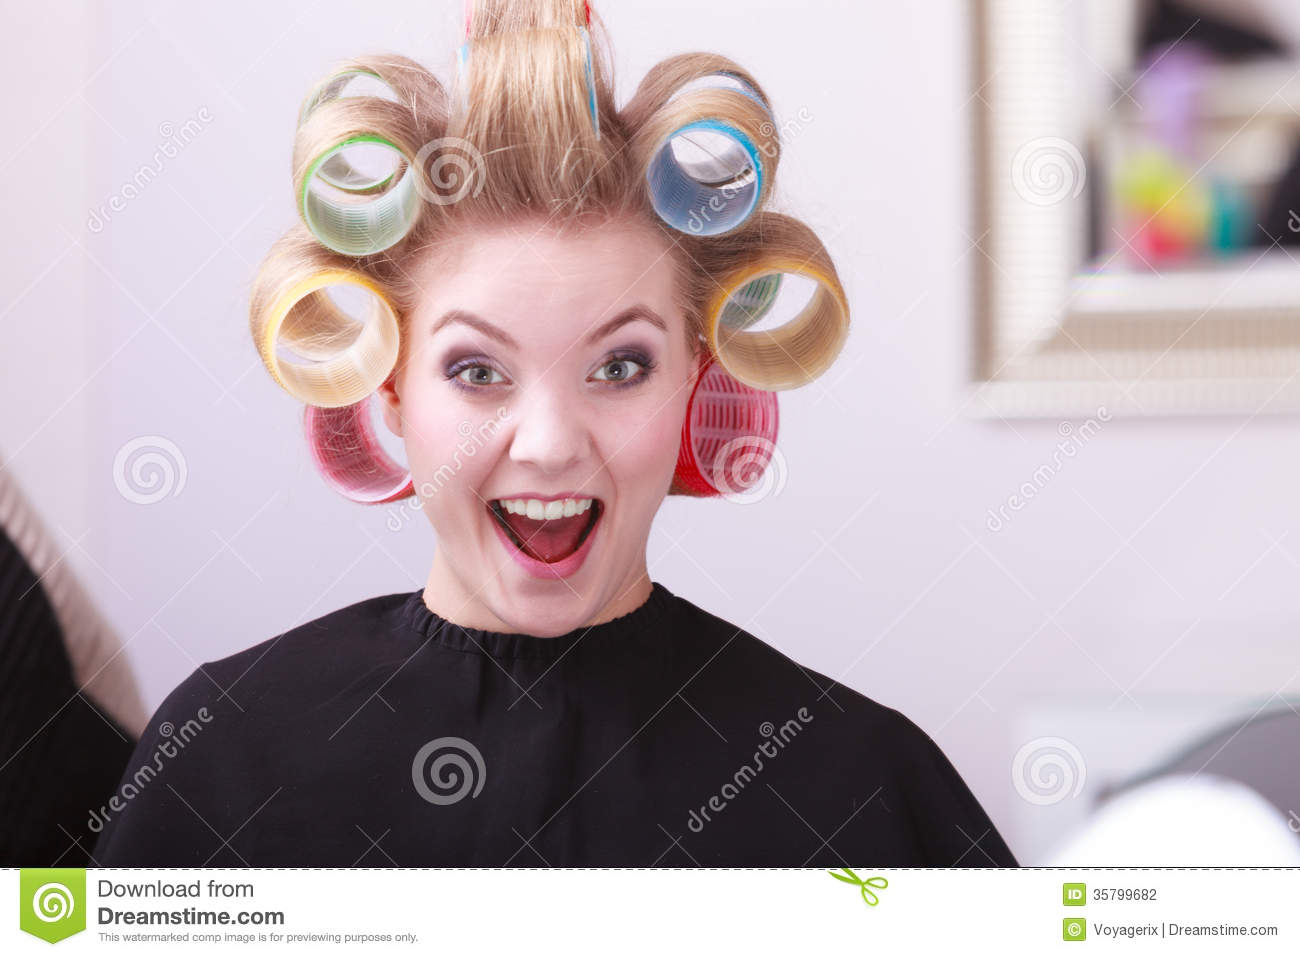 cheerful-happy-blond-girl-hair-curlers-rollers-hairdresser-beauty-salon-portrait-funny-woman-hairstyle-35799682.jpg